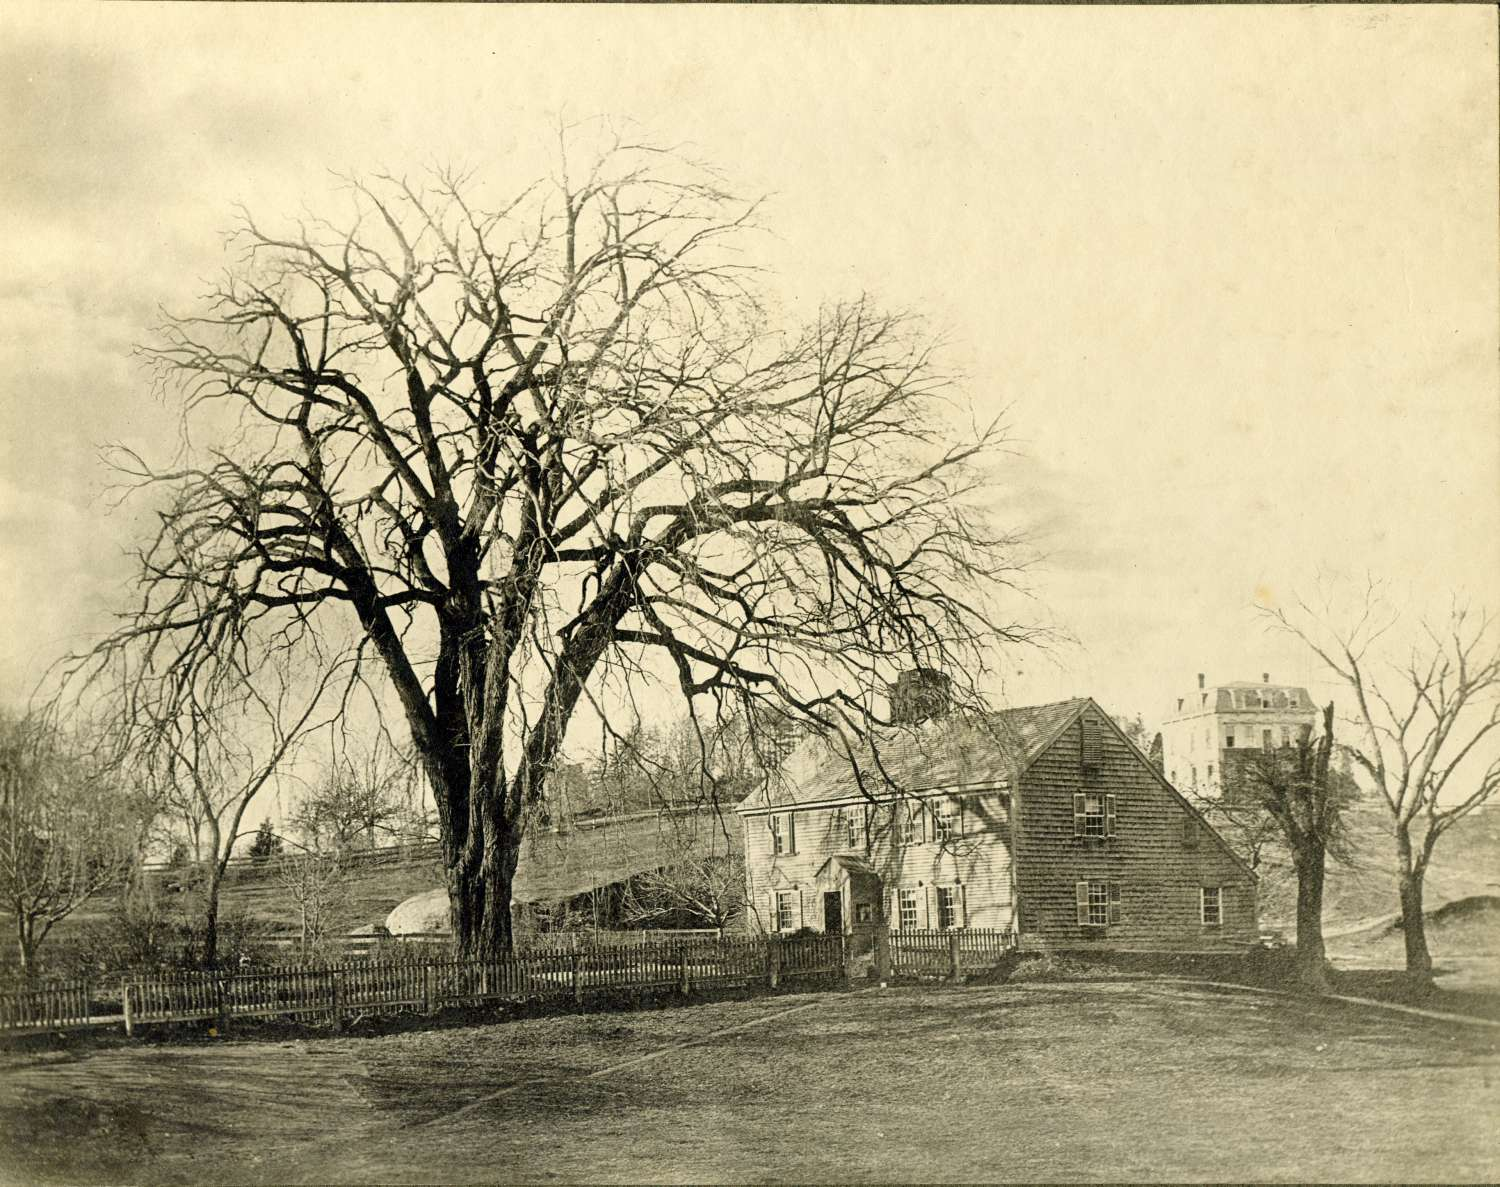 The first significant dwelling in Jamaica Plain, the homestead of William and Sally Curtis who arrived in 1638. Courtesy of Greg French.